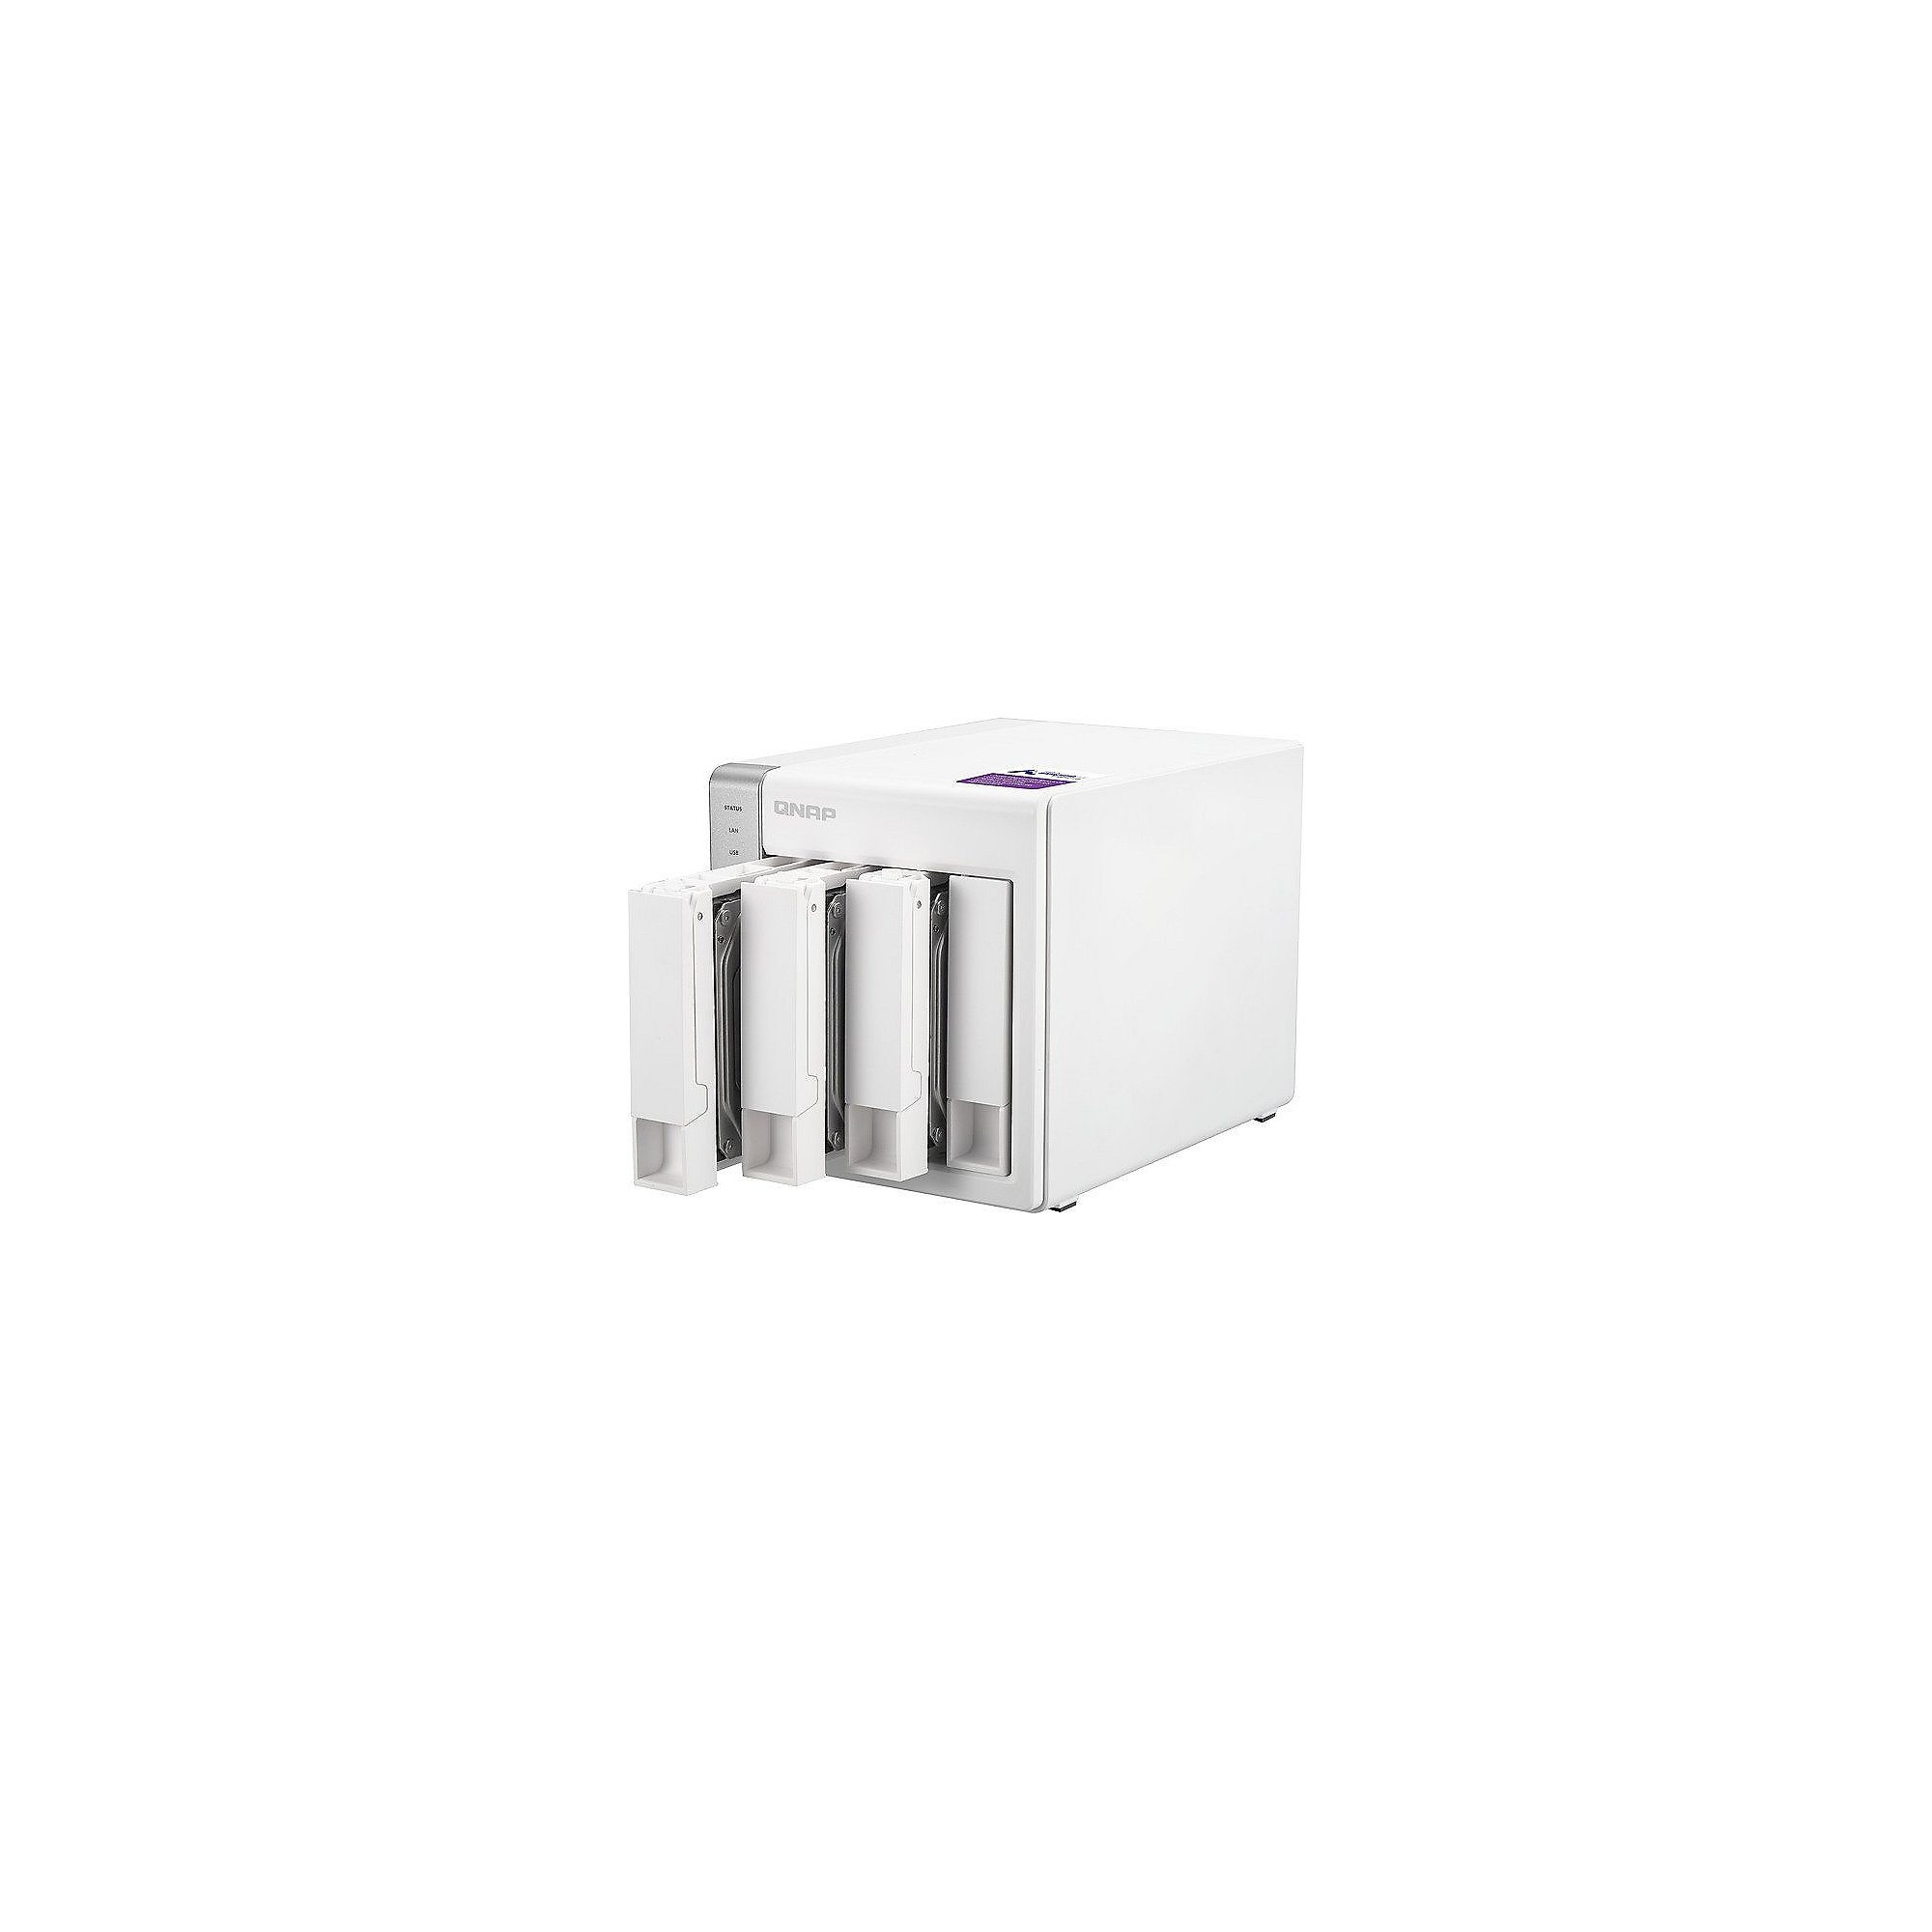 QNAP TS-431P NAS System 4-Bay 32TB inkl. 4x 8TB WD RED WD80EFZX